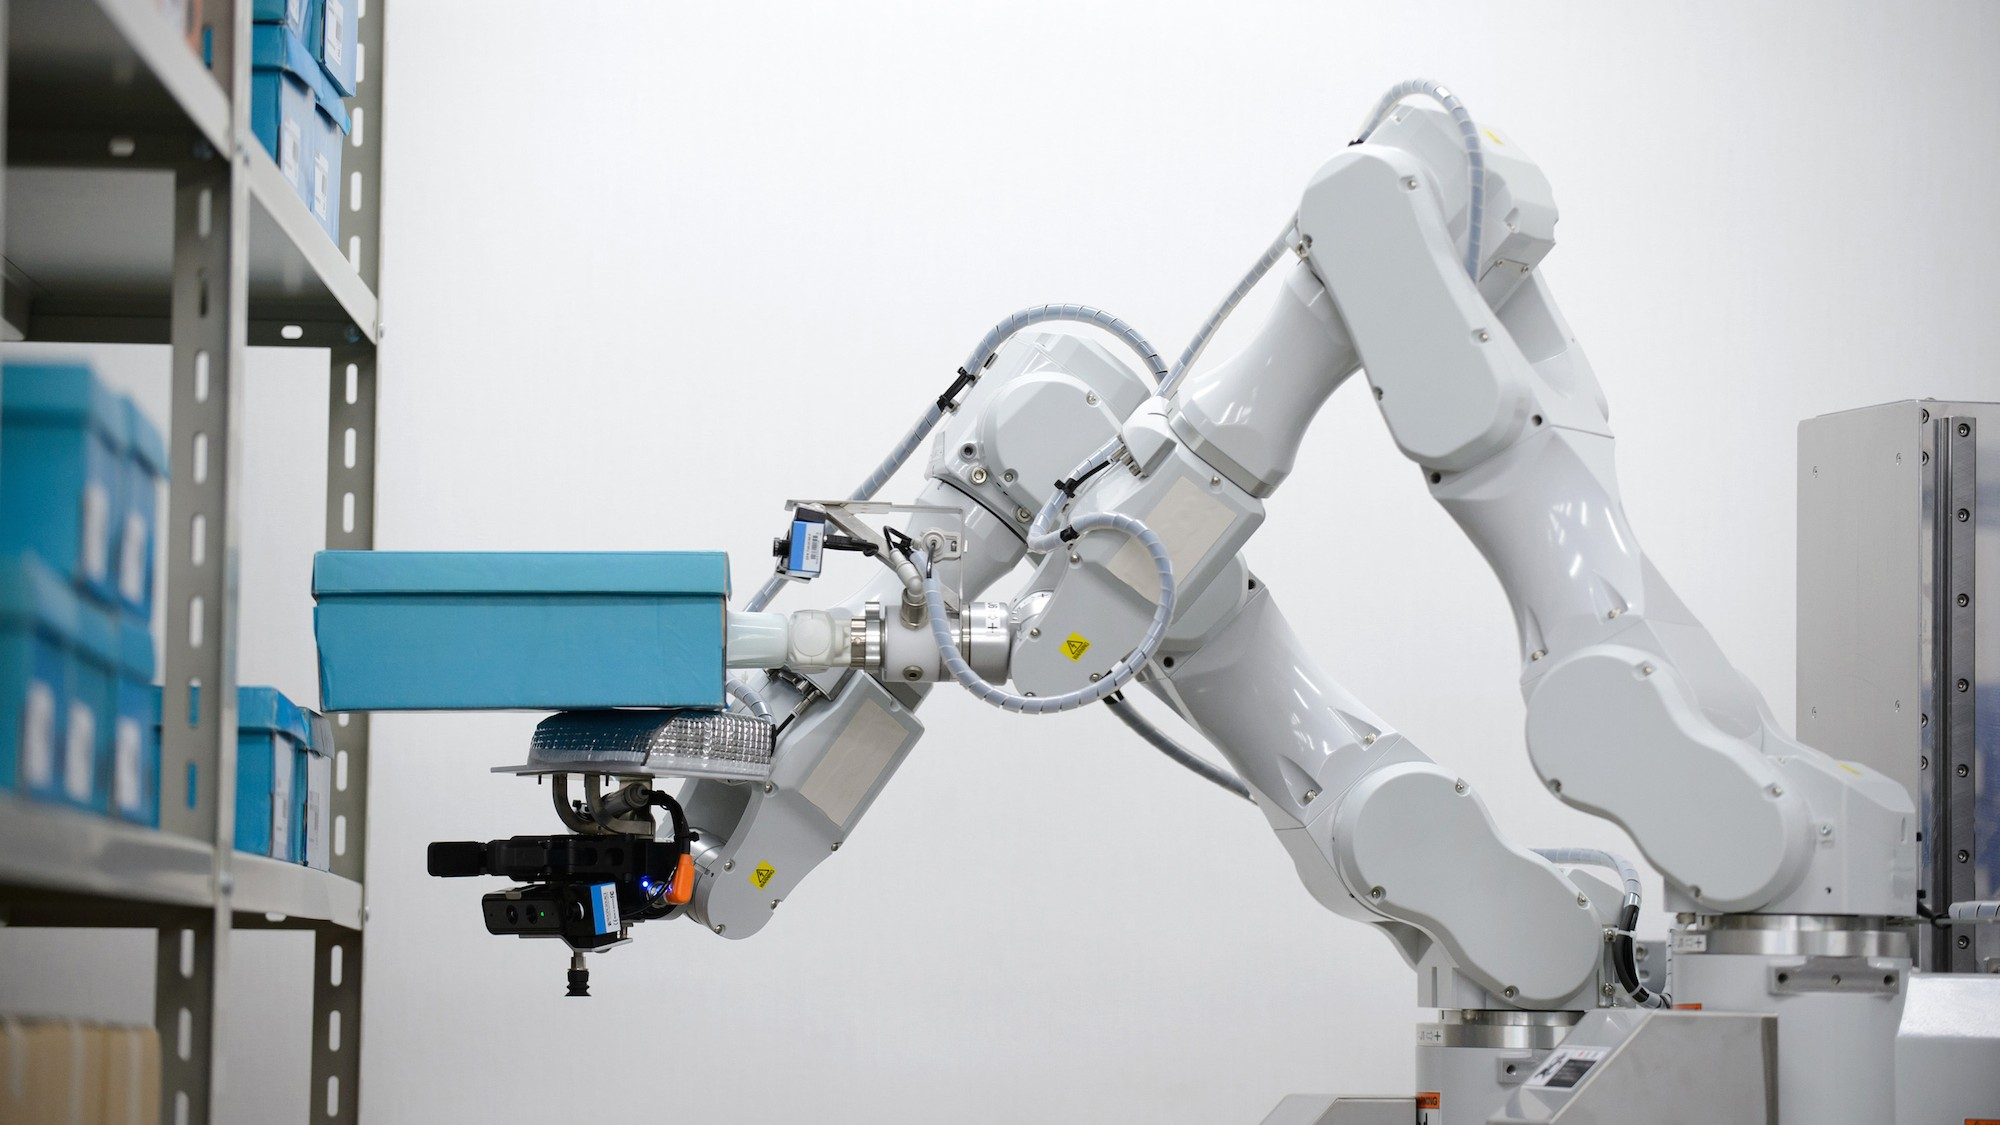 This Warehouse Robot Has 2 Arms, Works Twice as Fast